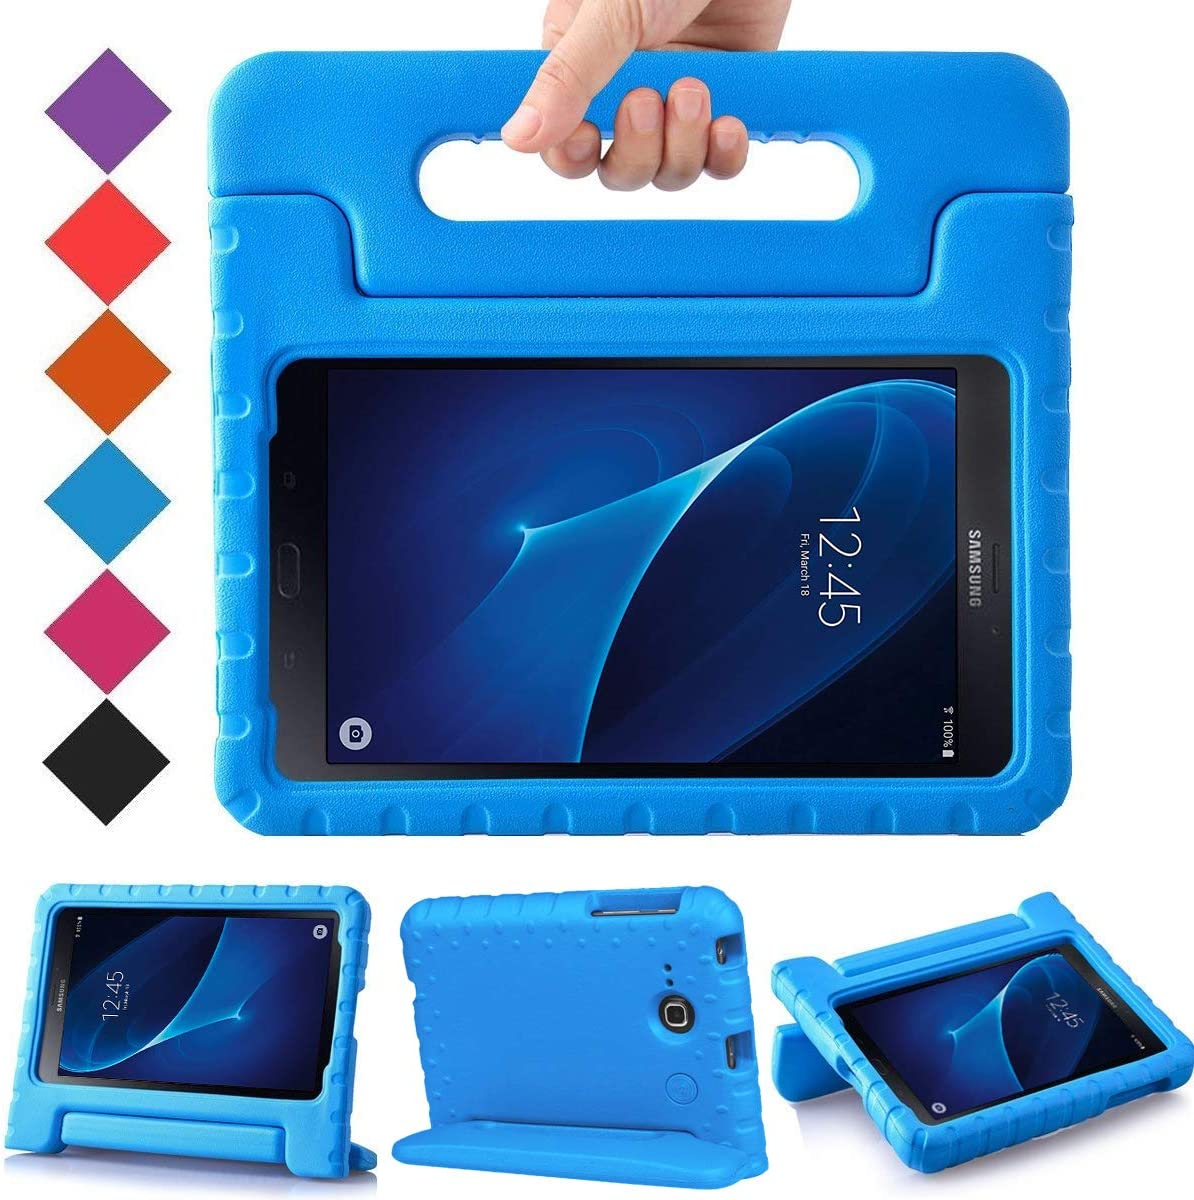 Amazon Com Bmouo Kids Case For Samsung Galaxy Tab A 7 0 Eva Shockproof Case Light Weight Kids Case Super Protection Cover Handle Stand Case For Kids Children For Samsung Galaxy Tab A